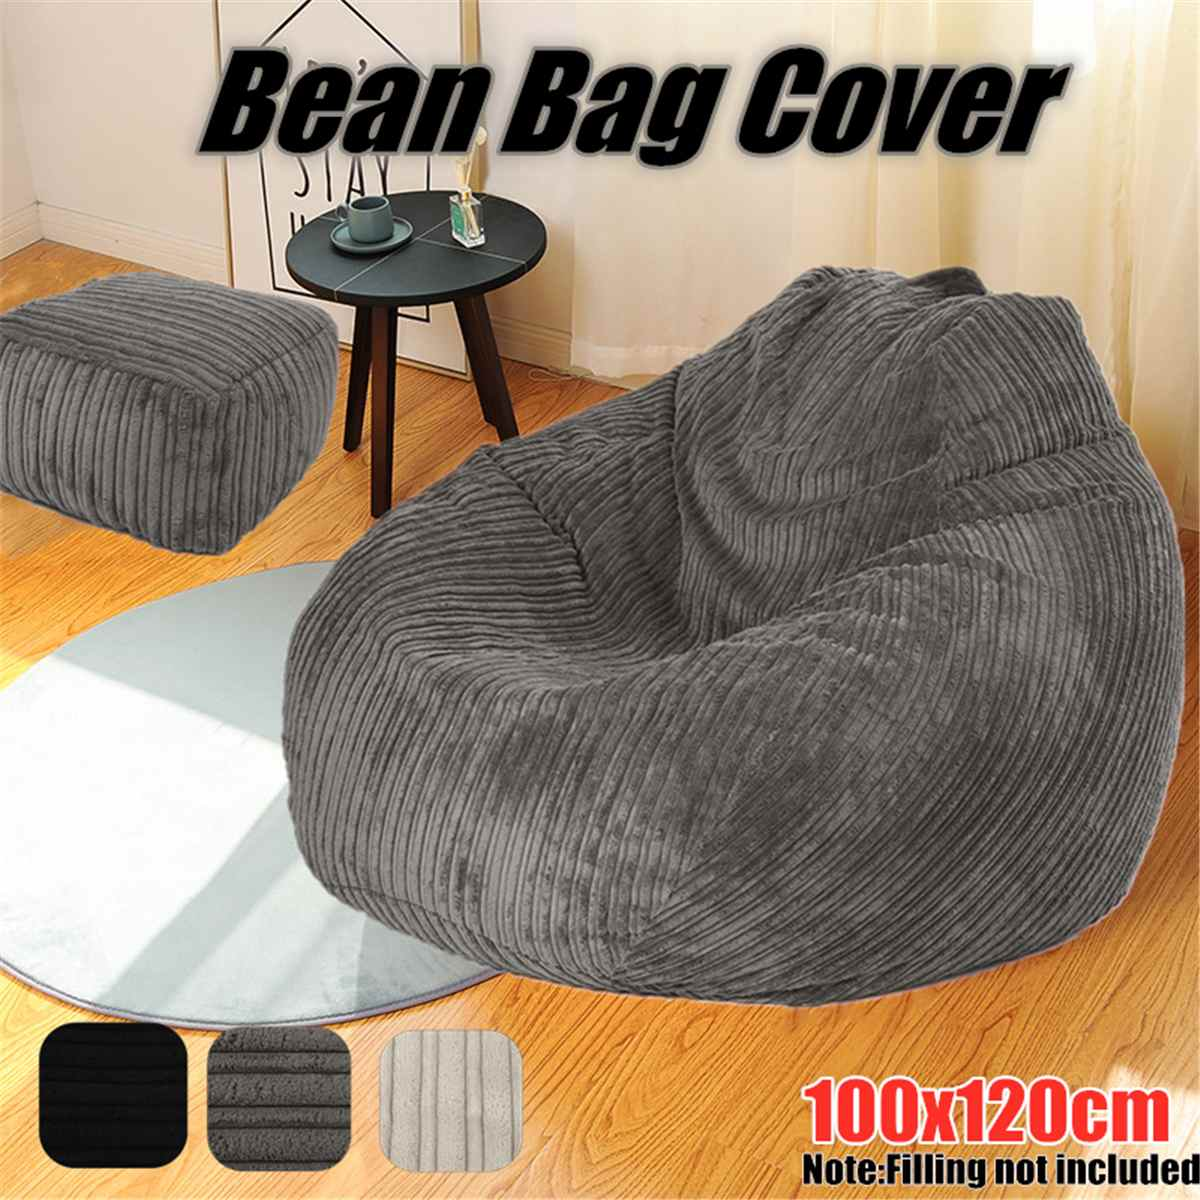 Awesome Us 30 95 52 Off Large Lazy Beanbag Sofas Cover Chairs Without Filler Corduroy Lounger Seat Bean Bag Pouf Puff Couch Tatami Living Room Grey In Bean Theyellowbook Wood Chair Design Ideas Theyellowbookinfo